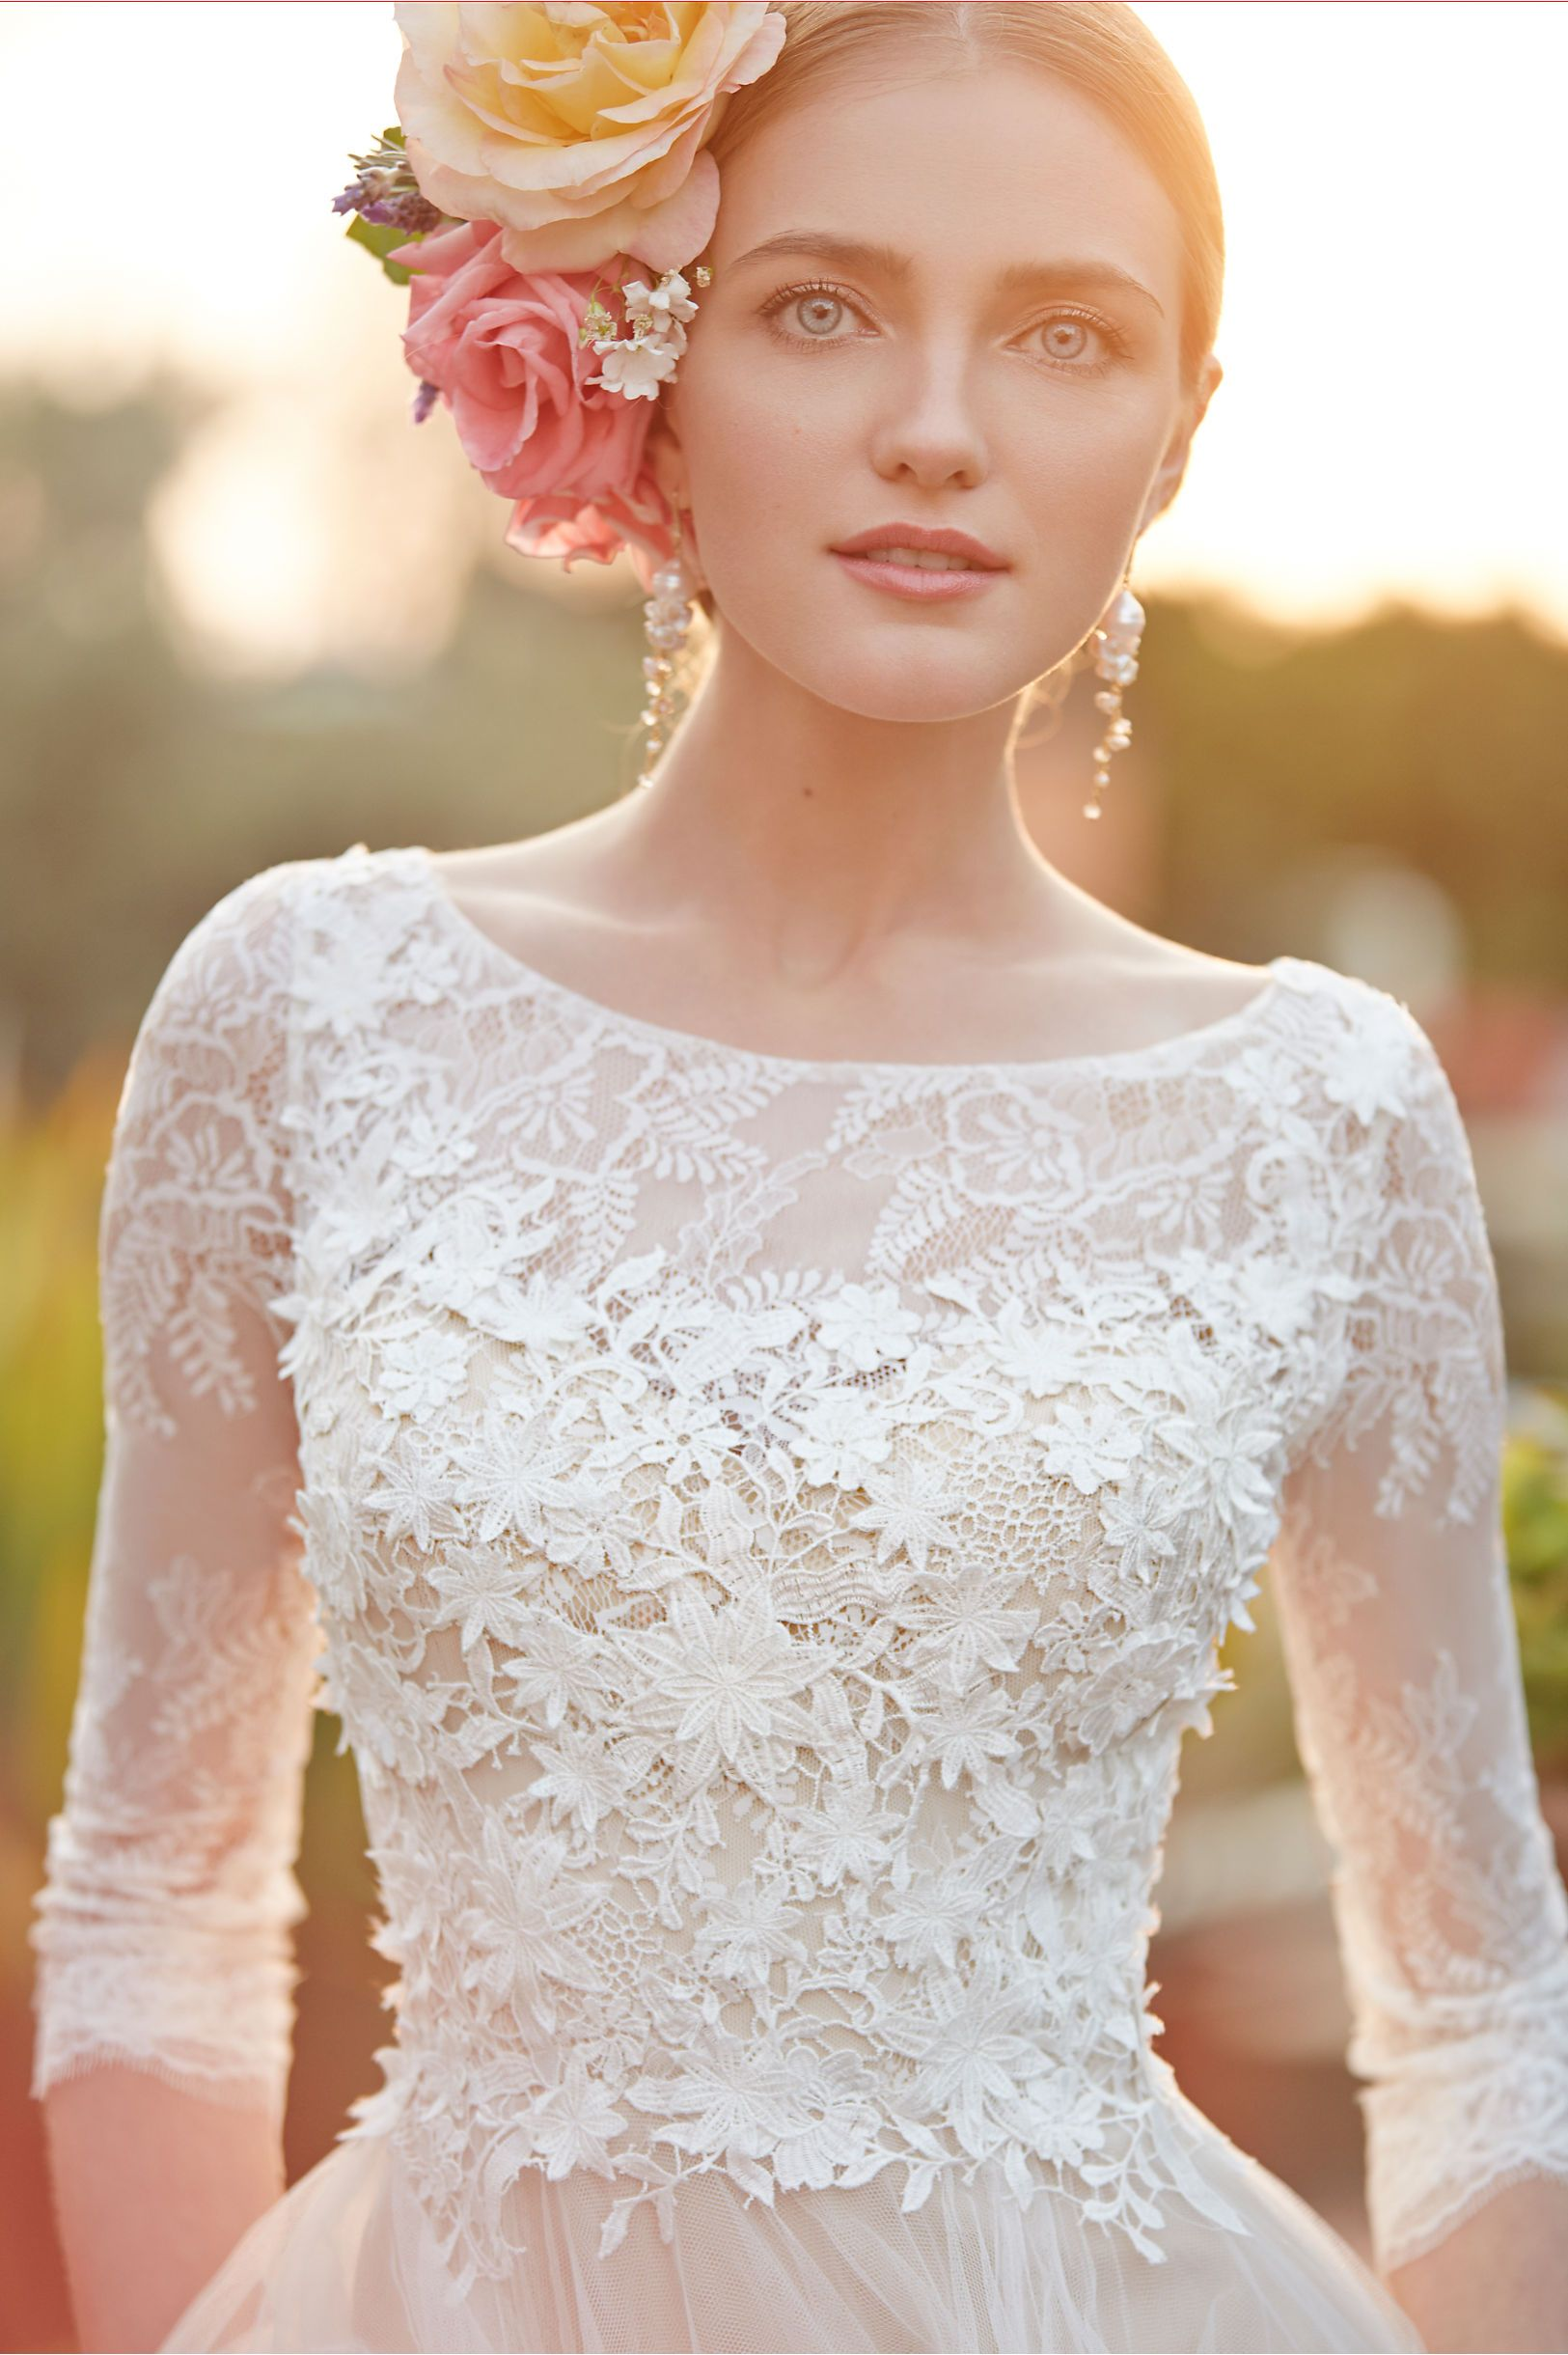 Conservative wedding dress  Amelie Gown from BHLDN  If I get marriedu  Pinterest  Amelie